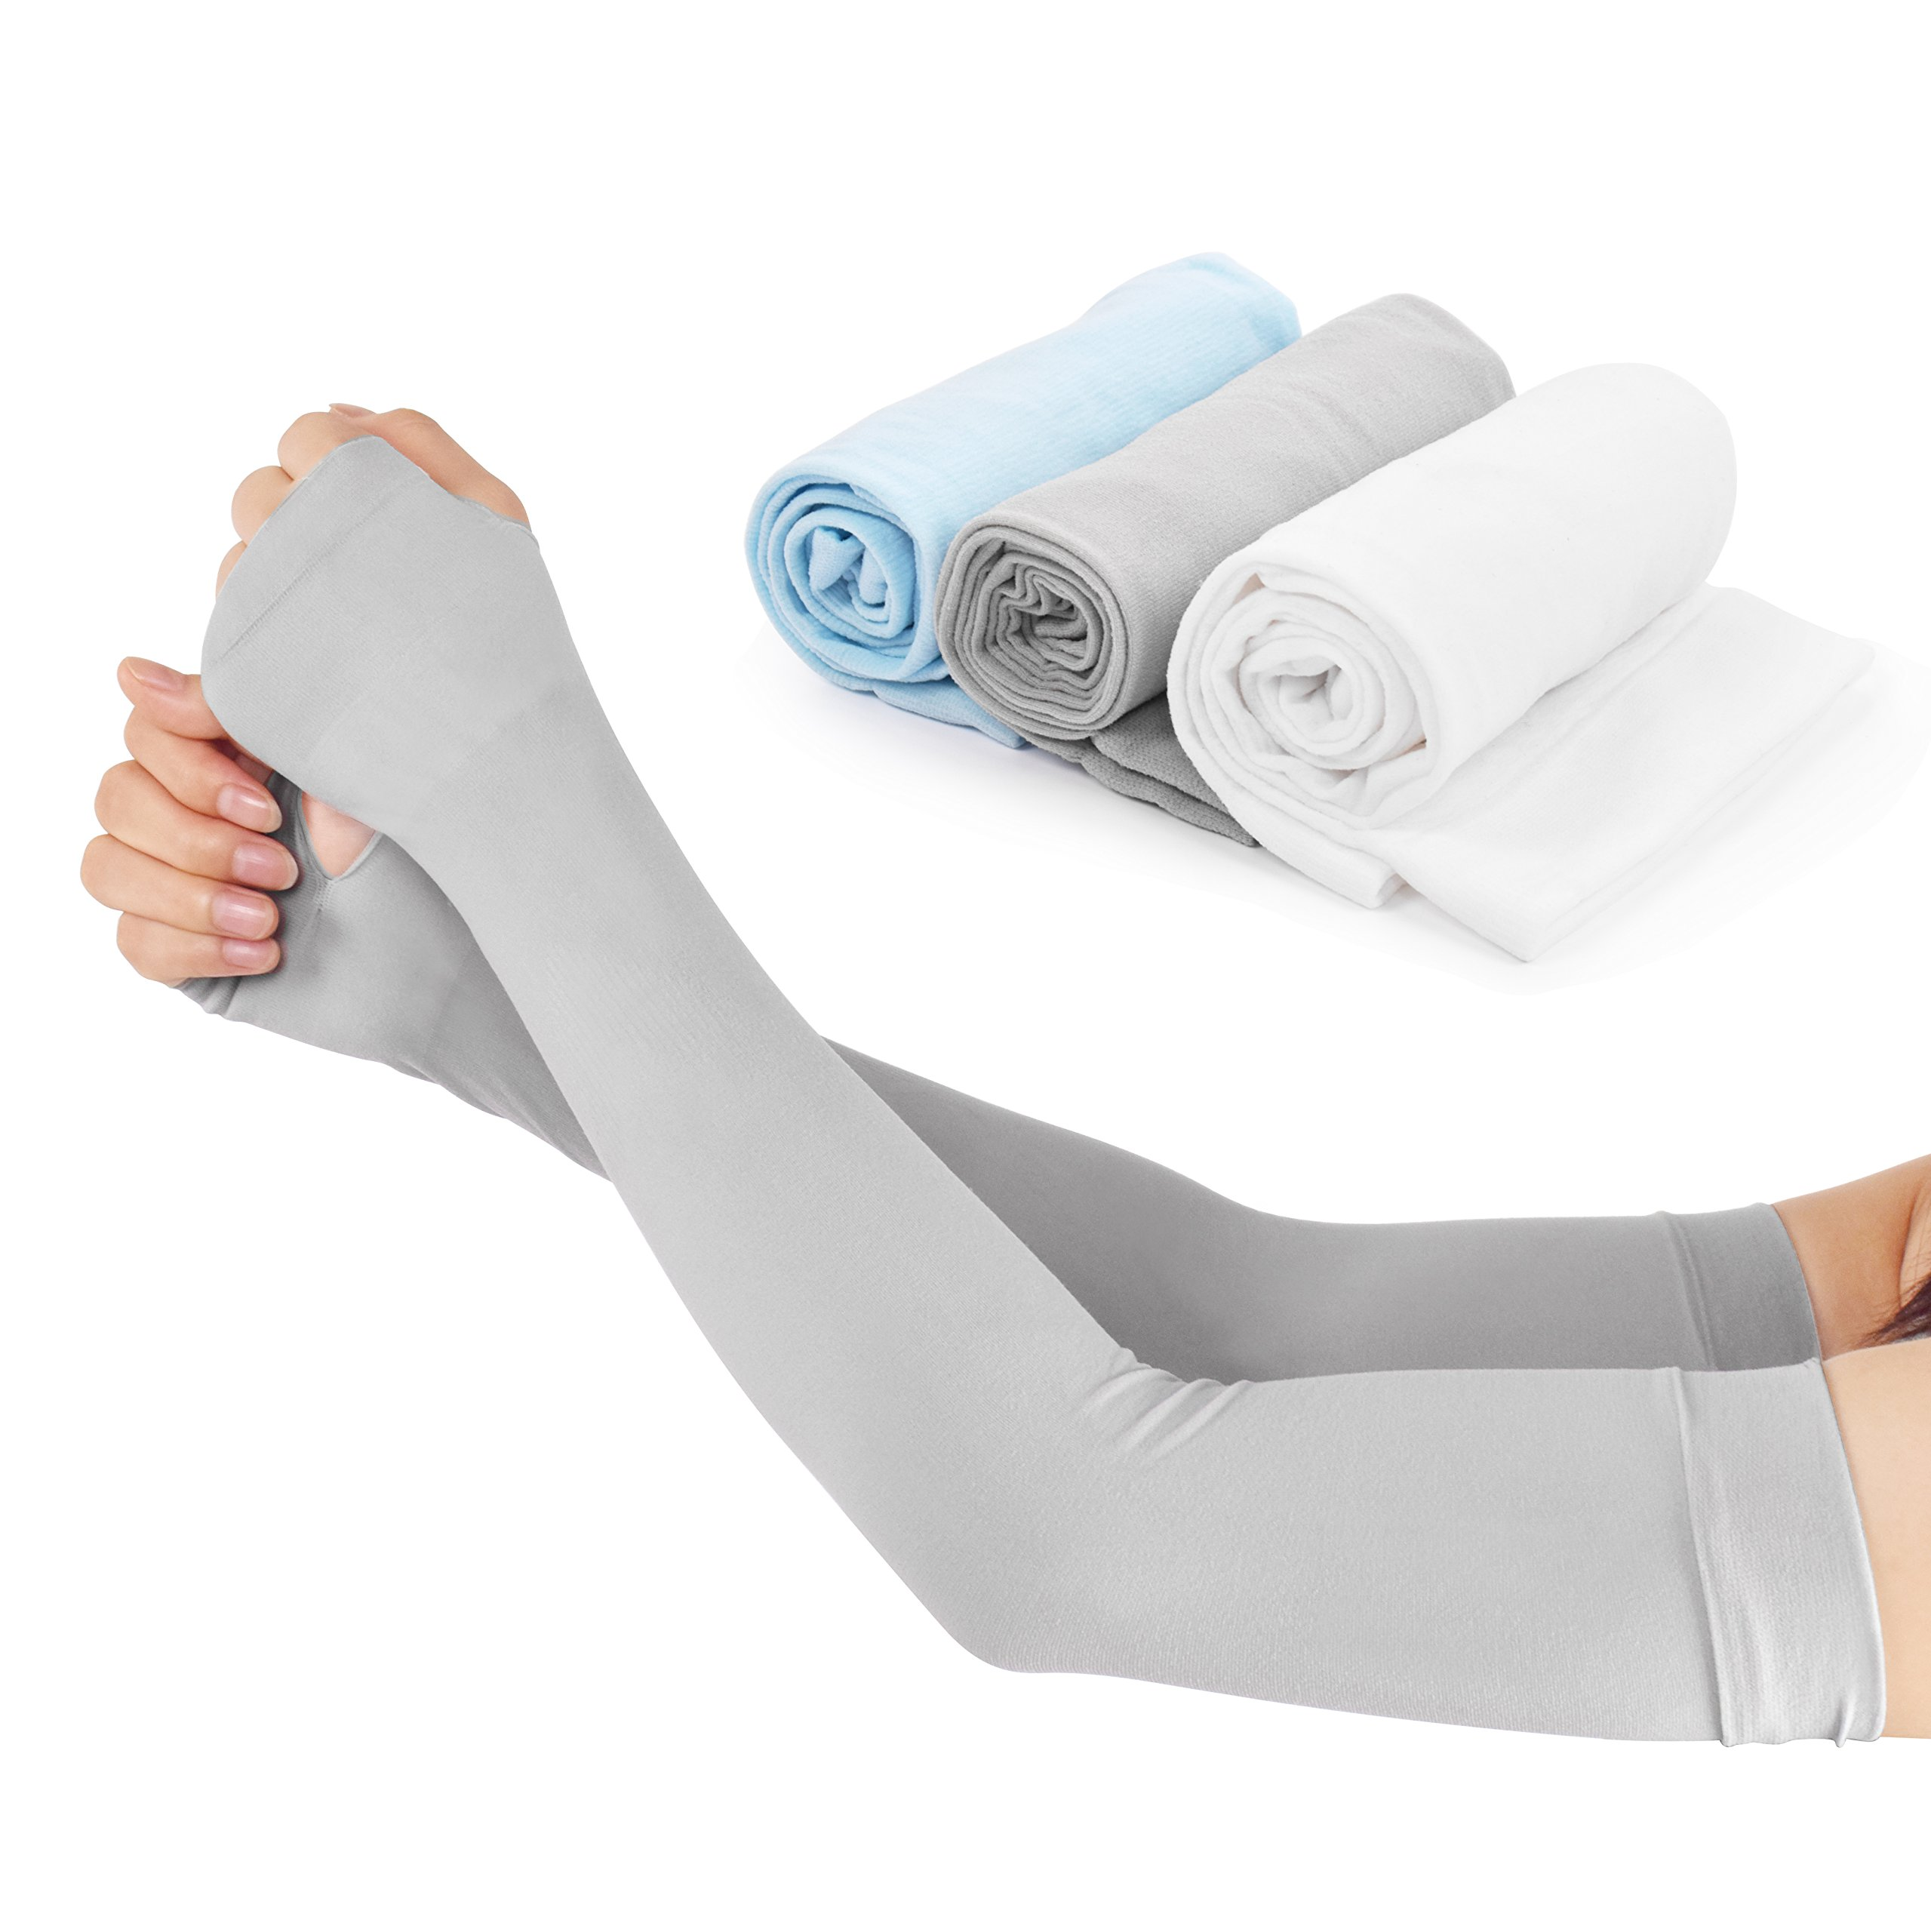 Women Cooling Arm Sleeves Cotton Thumb Hole UV Protection Compression Arm Sleeves Gloves Sleeves for Cycling, Driving, Outdoor Sports, Golf Sleeves 3Pairs(3 Colors)